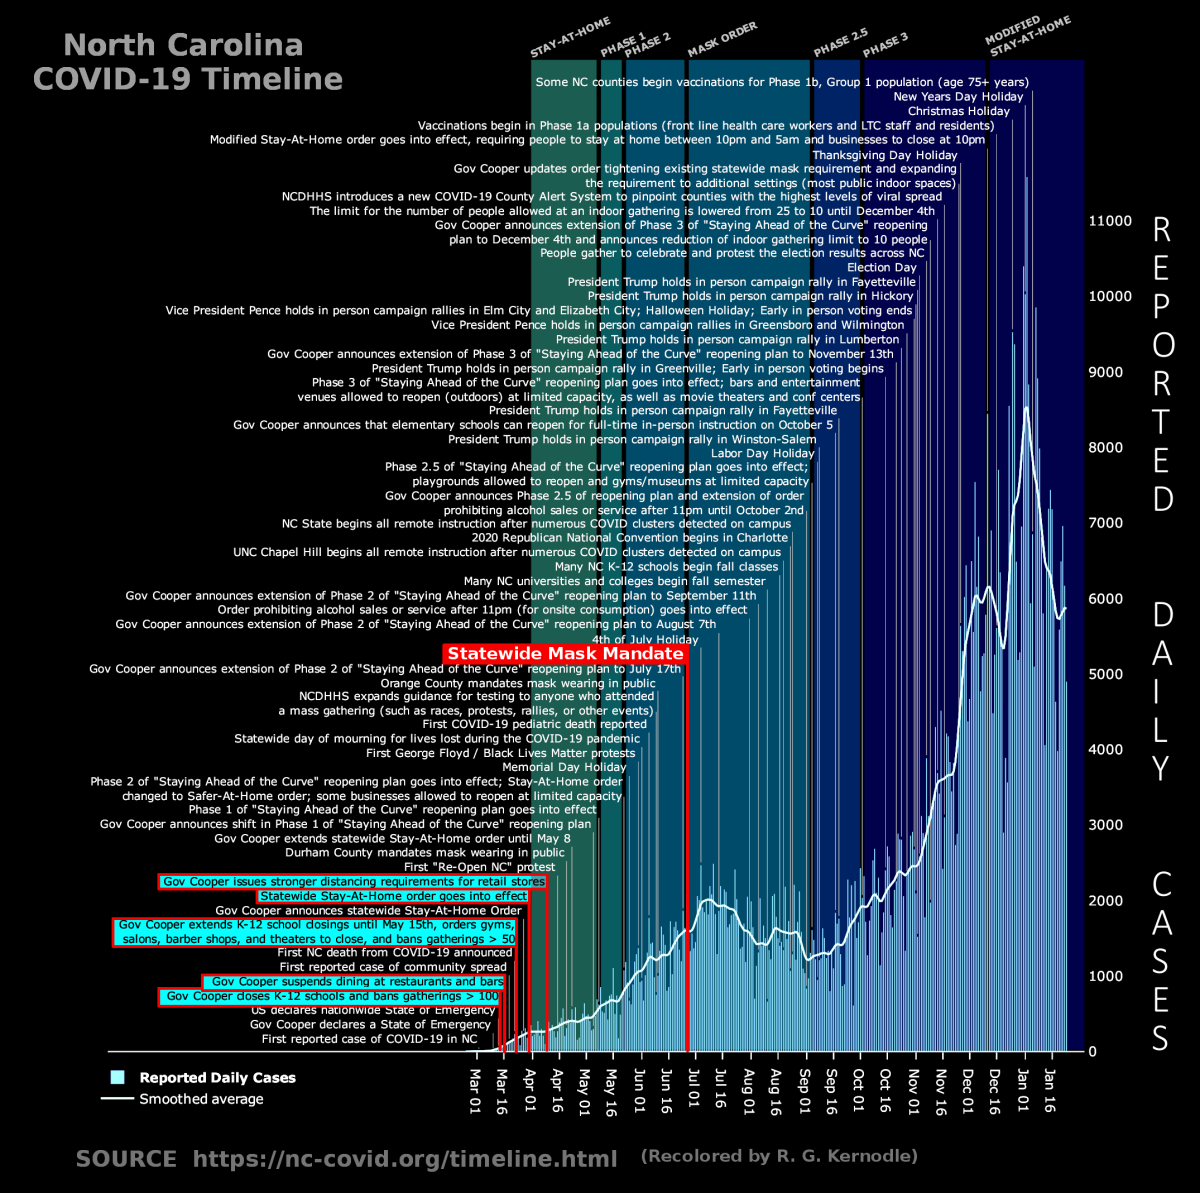 Figure1. NC COVID-19 timeline, showing all government actions in relation to the COVID-19 case-growth curve, with key economically and socially destructive markers.Chart adapted and enhanced from the original source, by R. G. Kernodle.